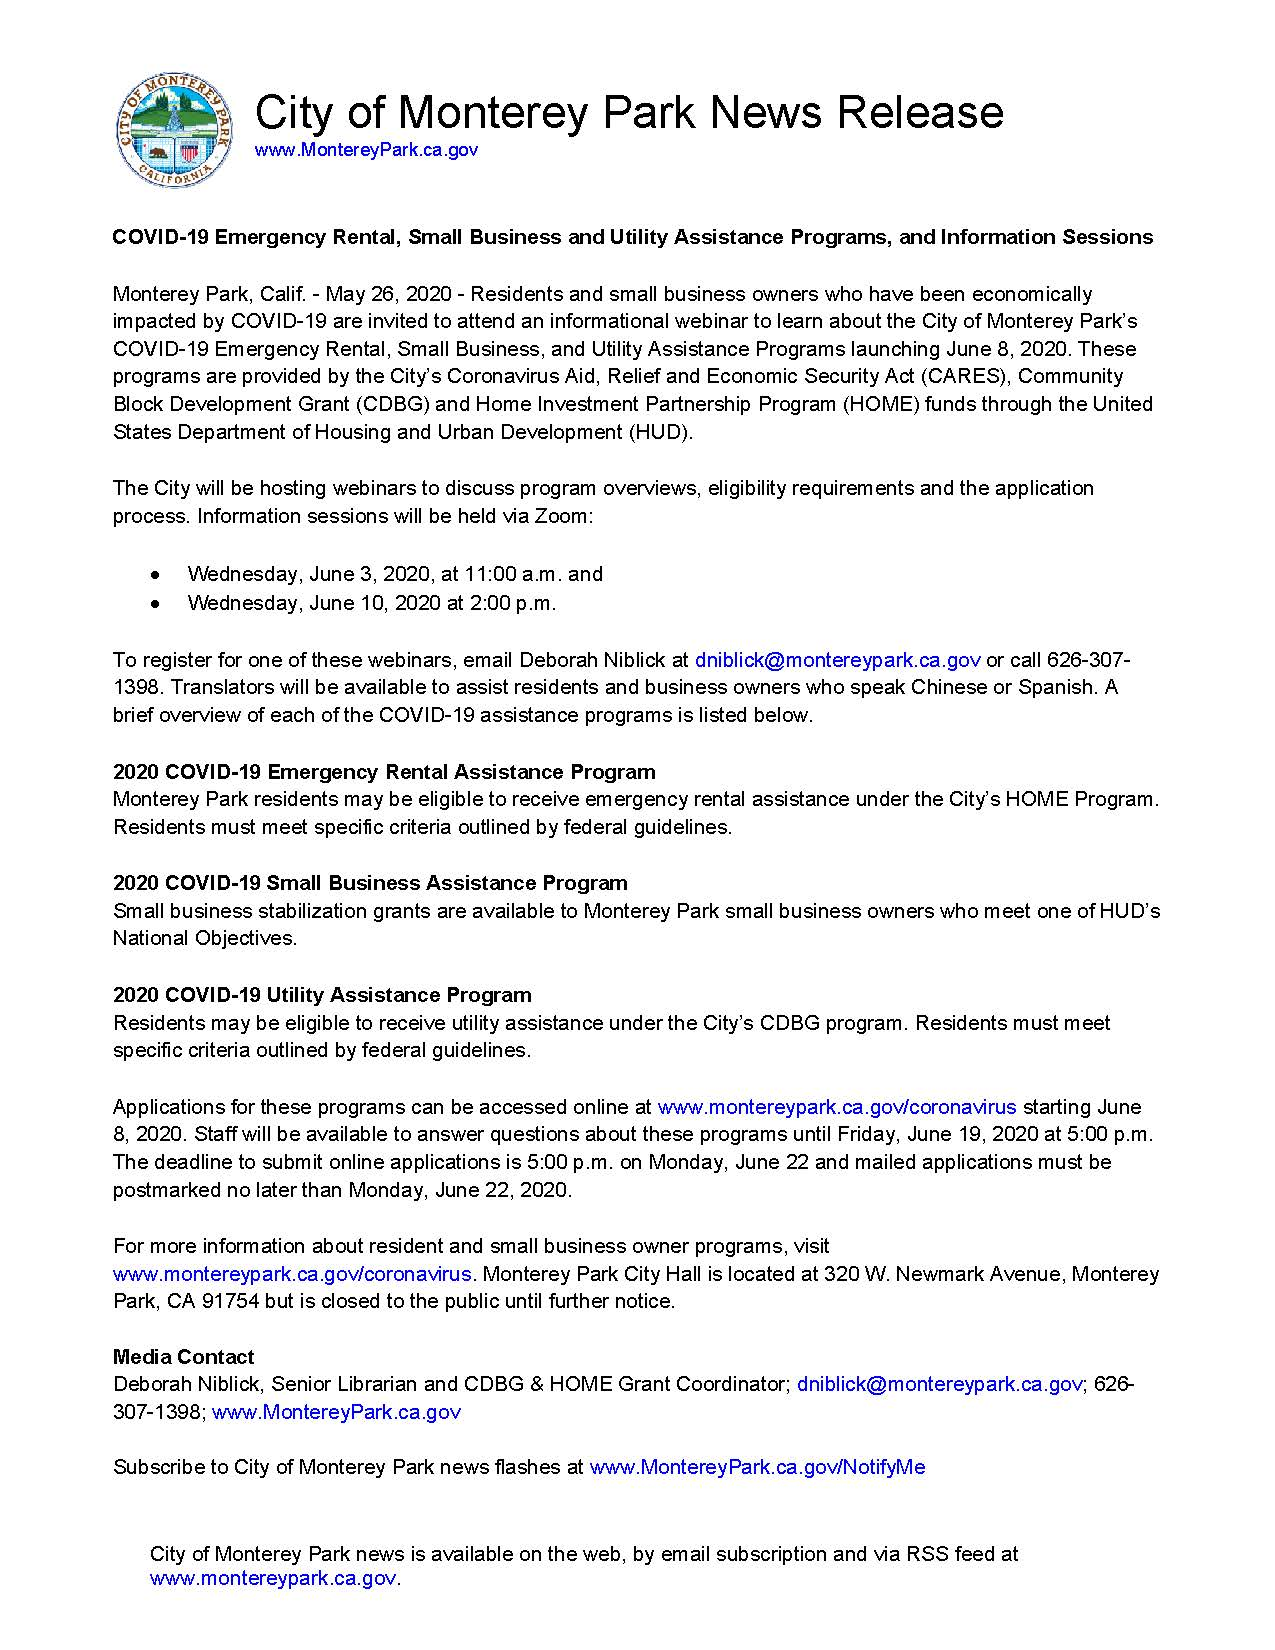 MPK News Release-COVID-19 Emergency Rental Small Business Utility Assistance Programs and Info Sessi